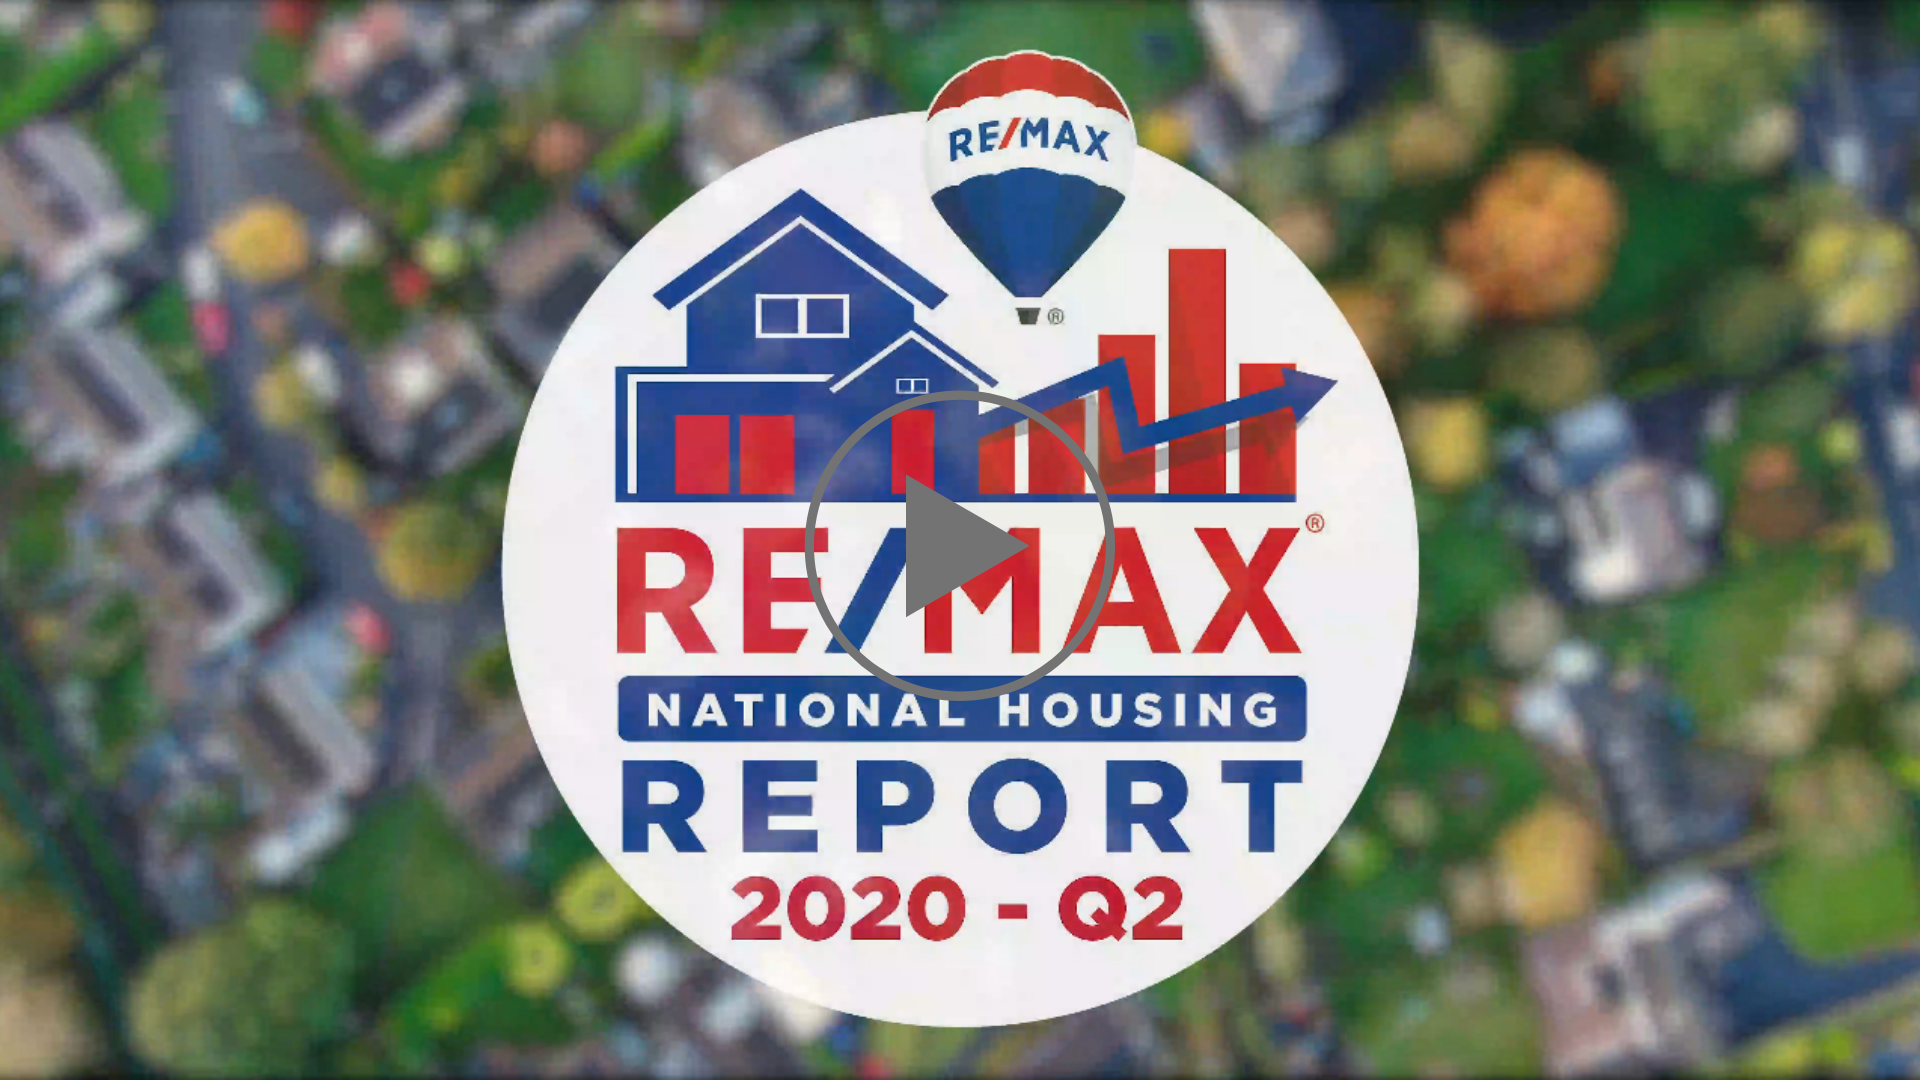 RE/MAX National Housing Report Q2 2020 National Lockdown brings the Property Market to a Standstill